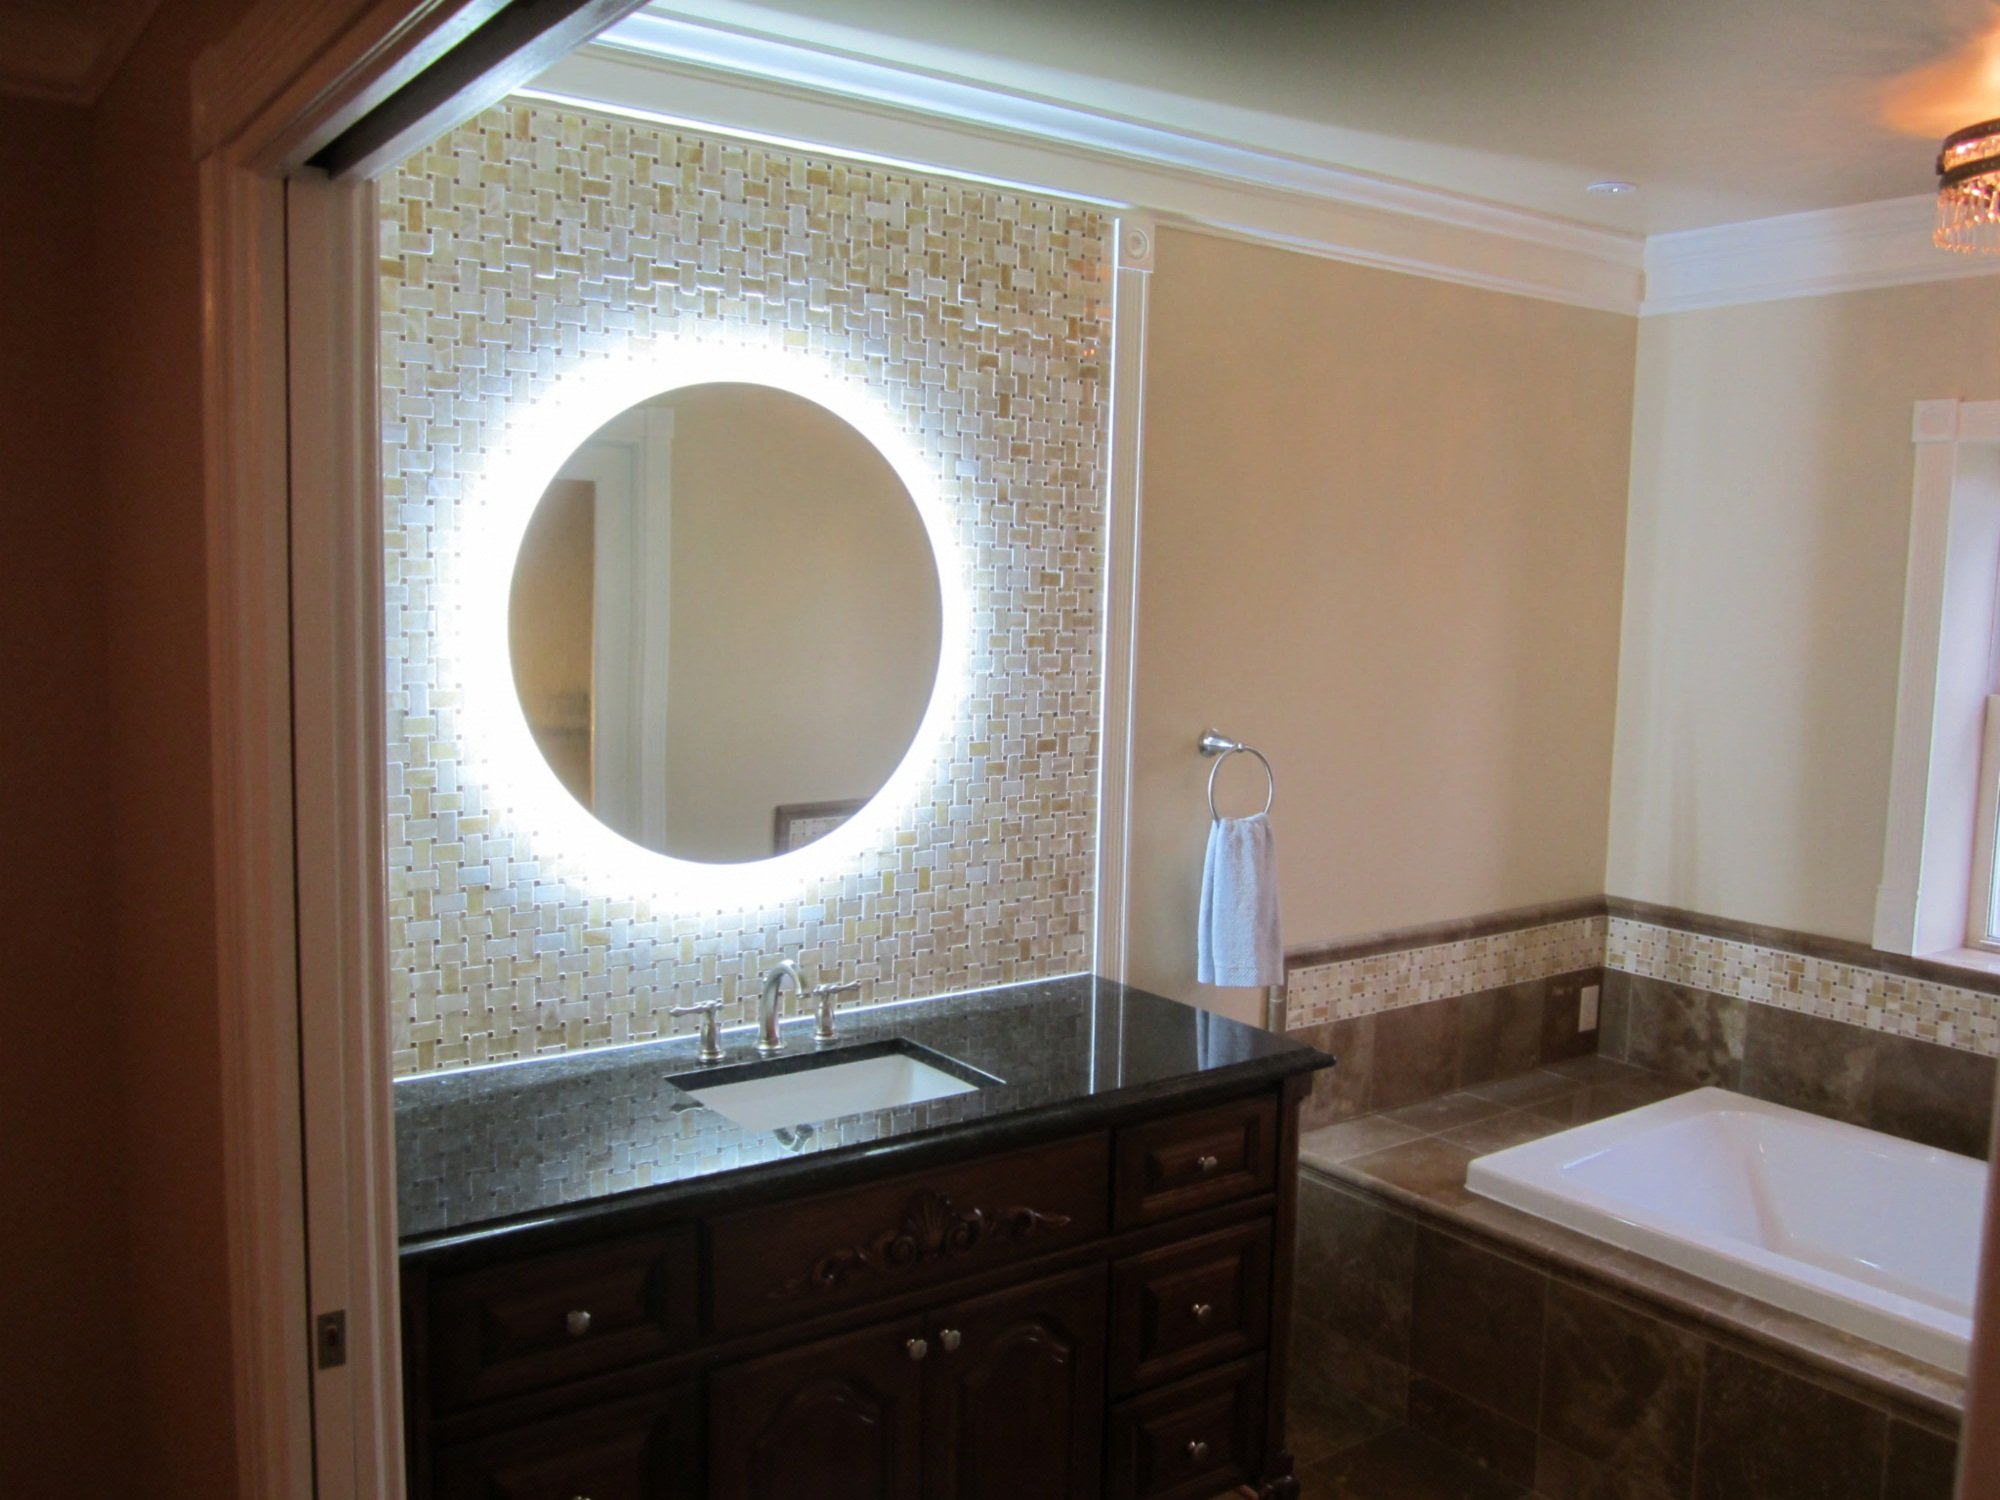 Wall Mounted Lighted Vanity Mirror LED MAM2D32 Commercial Grade 32'' Round